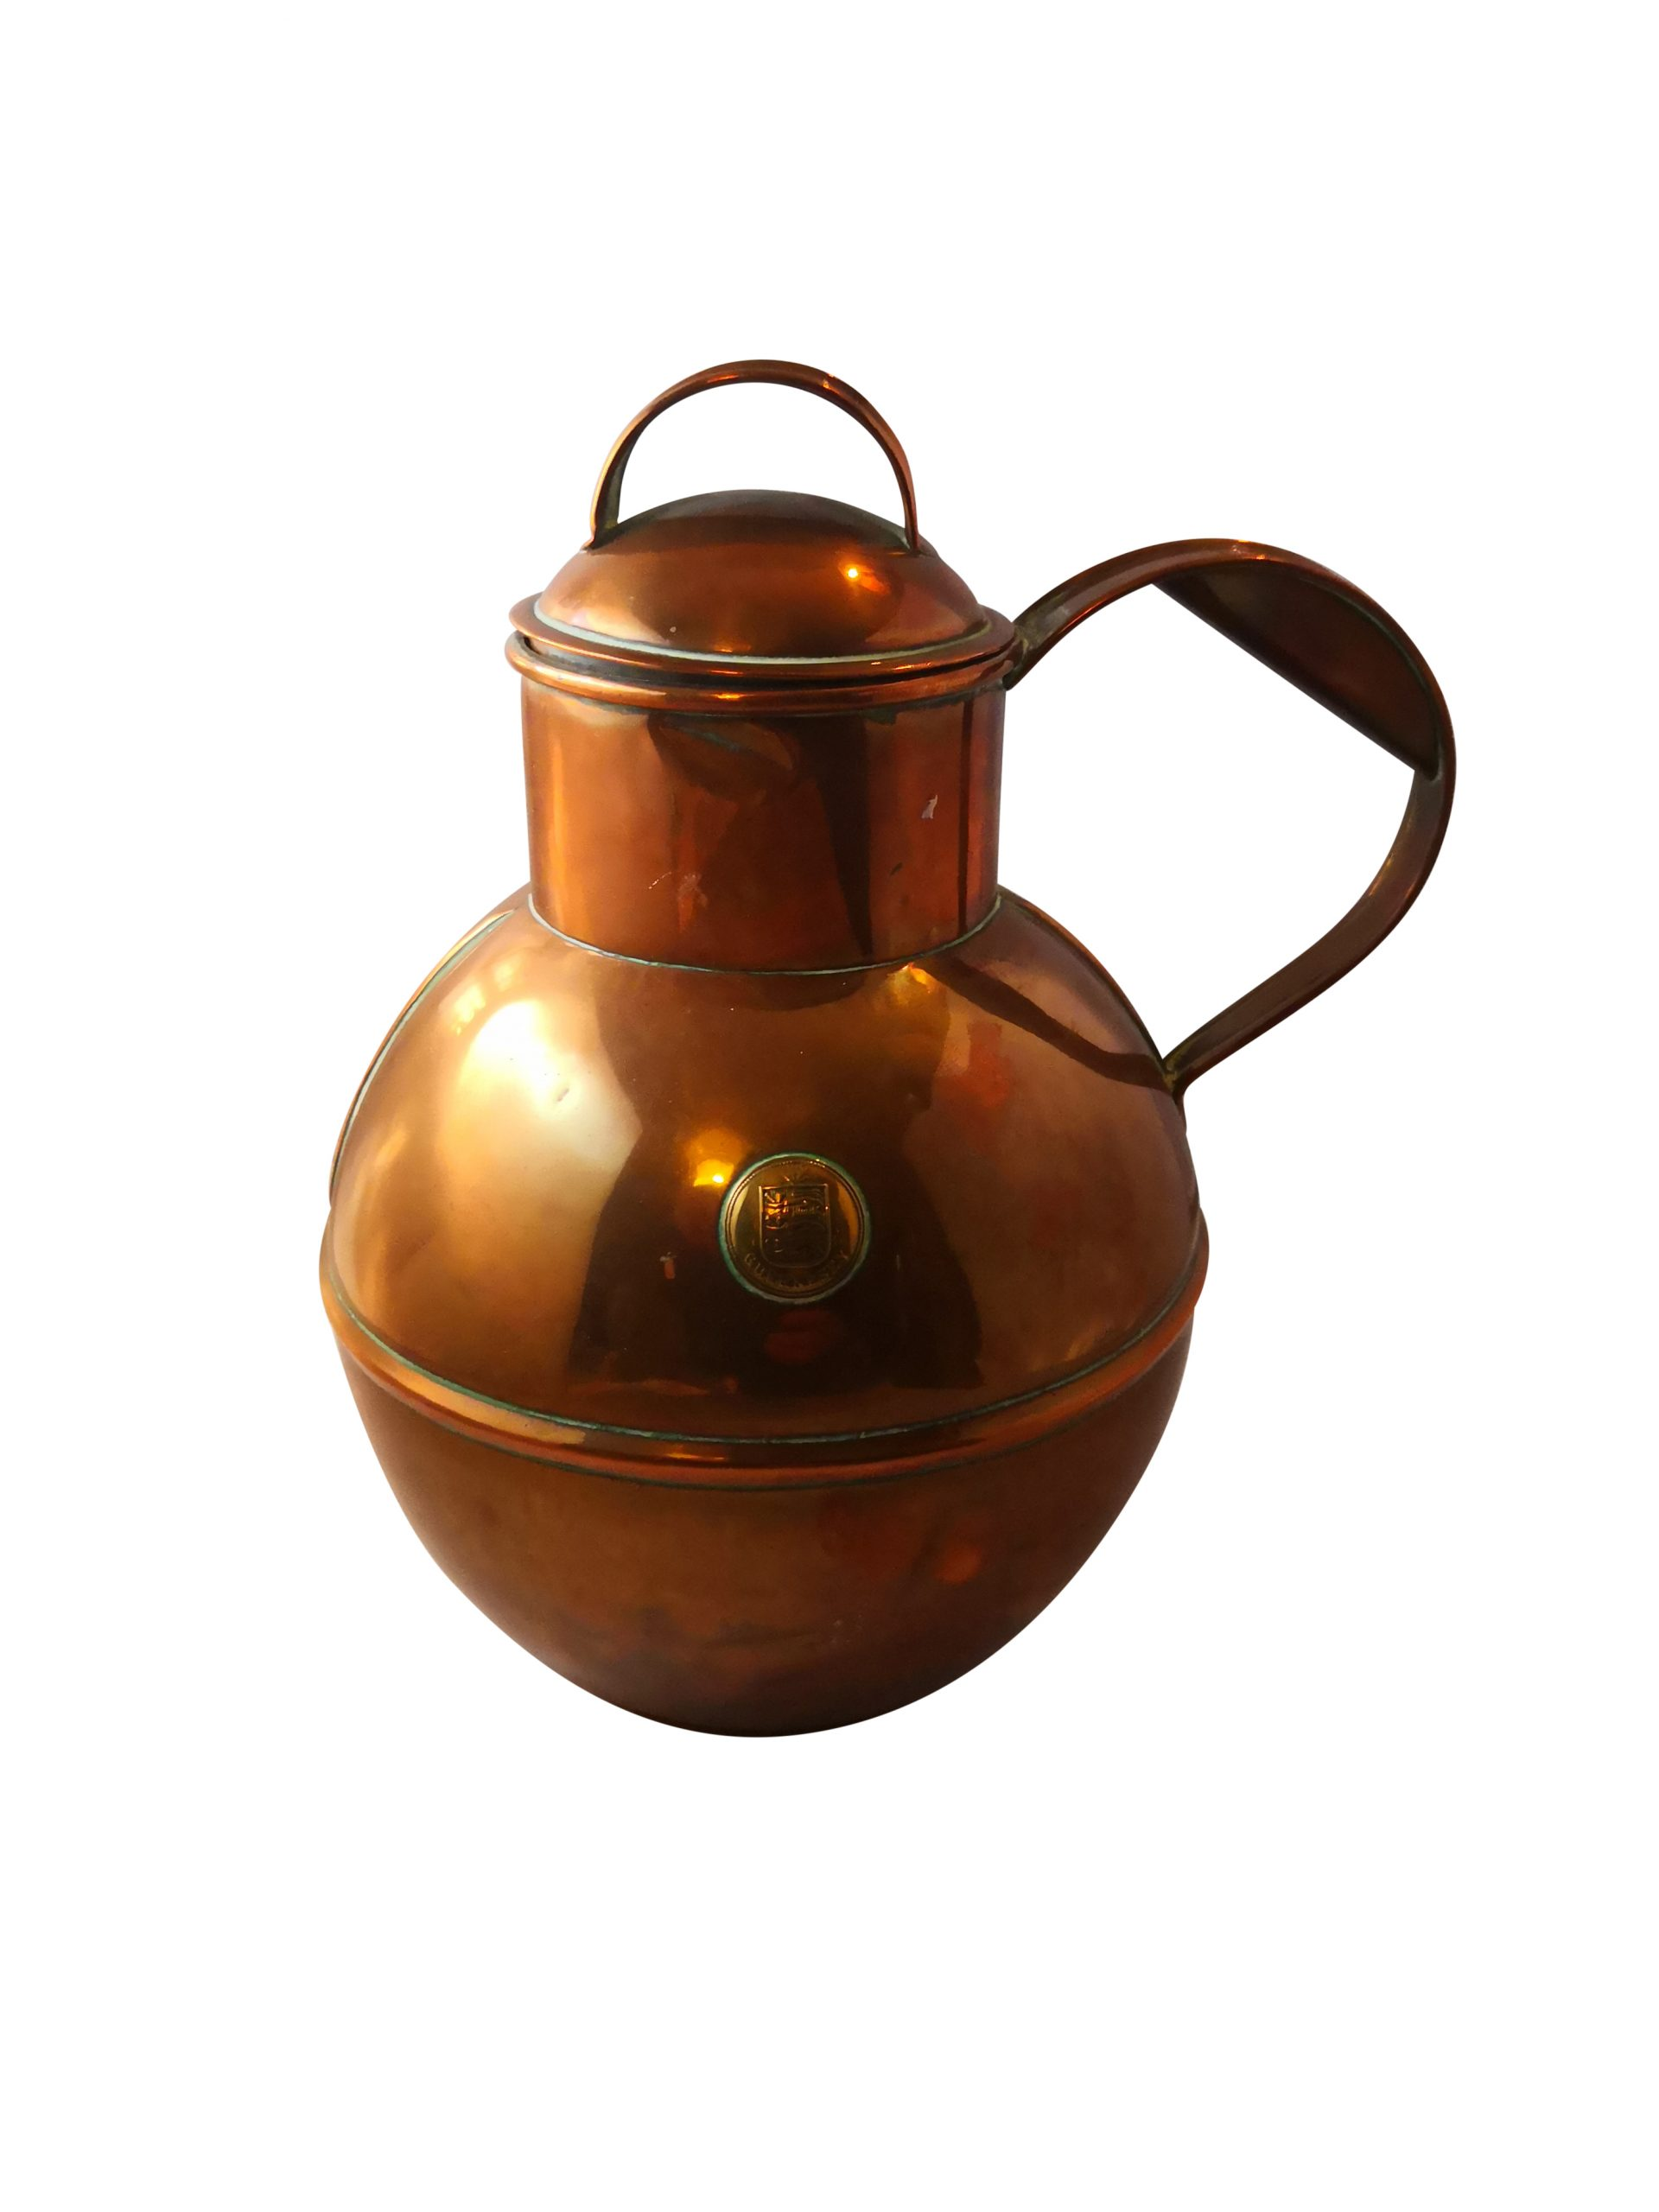 Antique C A Martin of Guernsey copper jug with lid from Antik Seramika